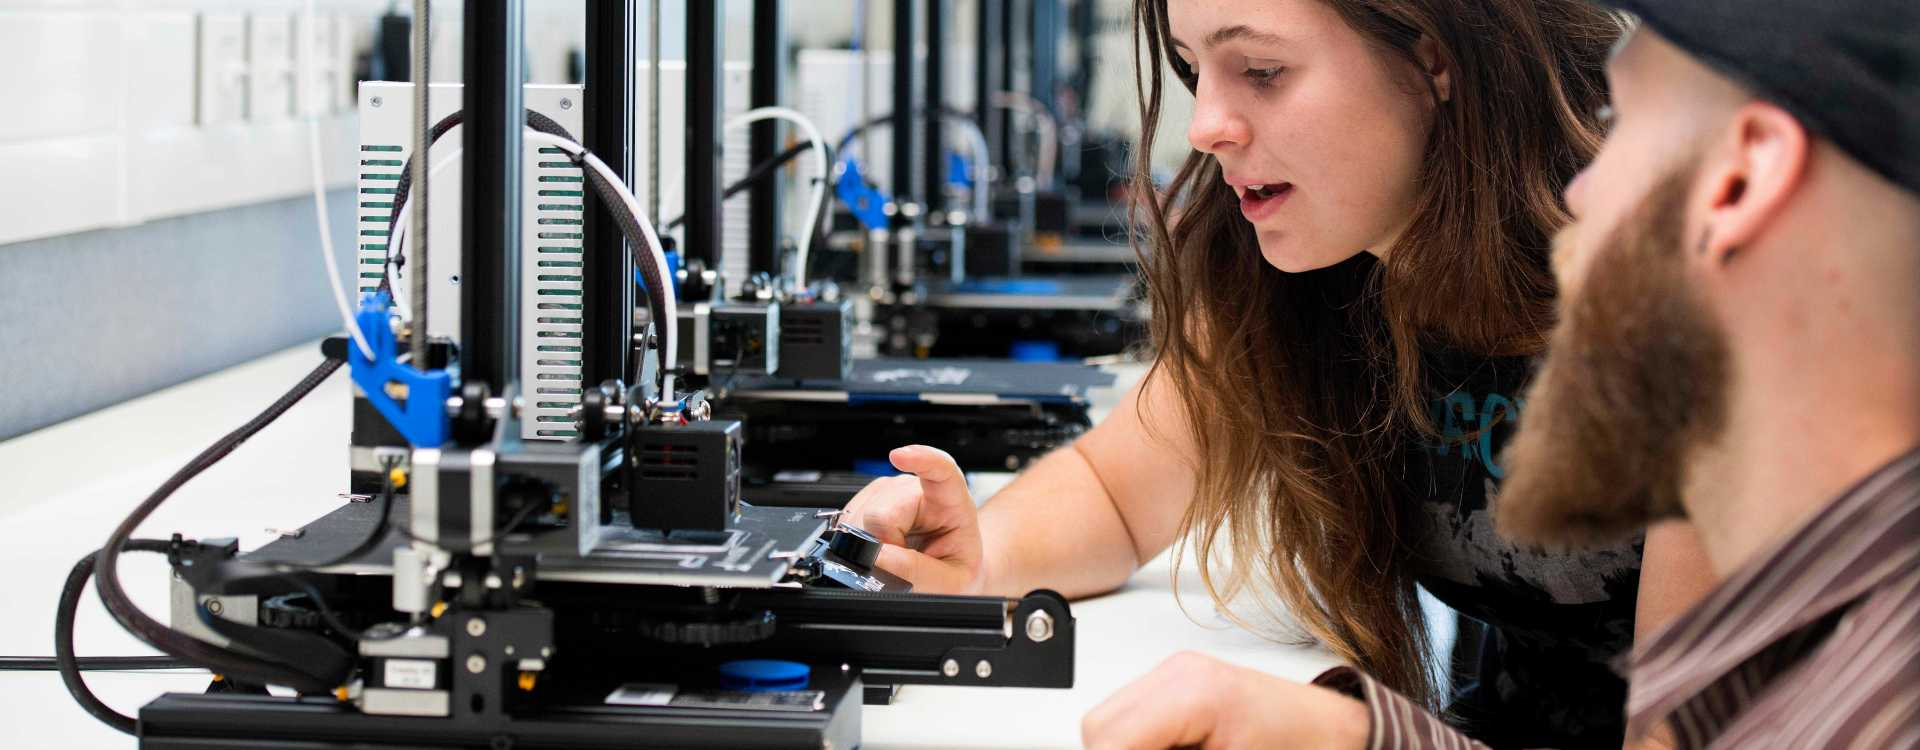 Additive Manufacturing Lab - image courtesy of the University of Central Lancashire (UCLan).